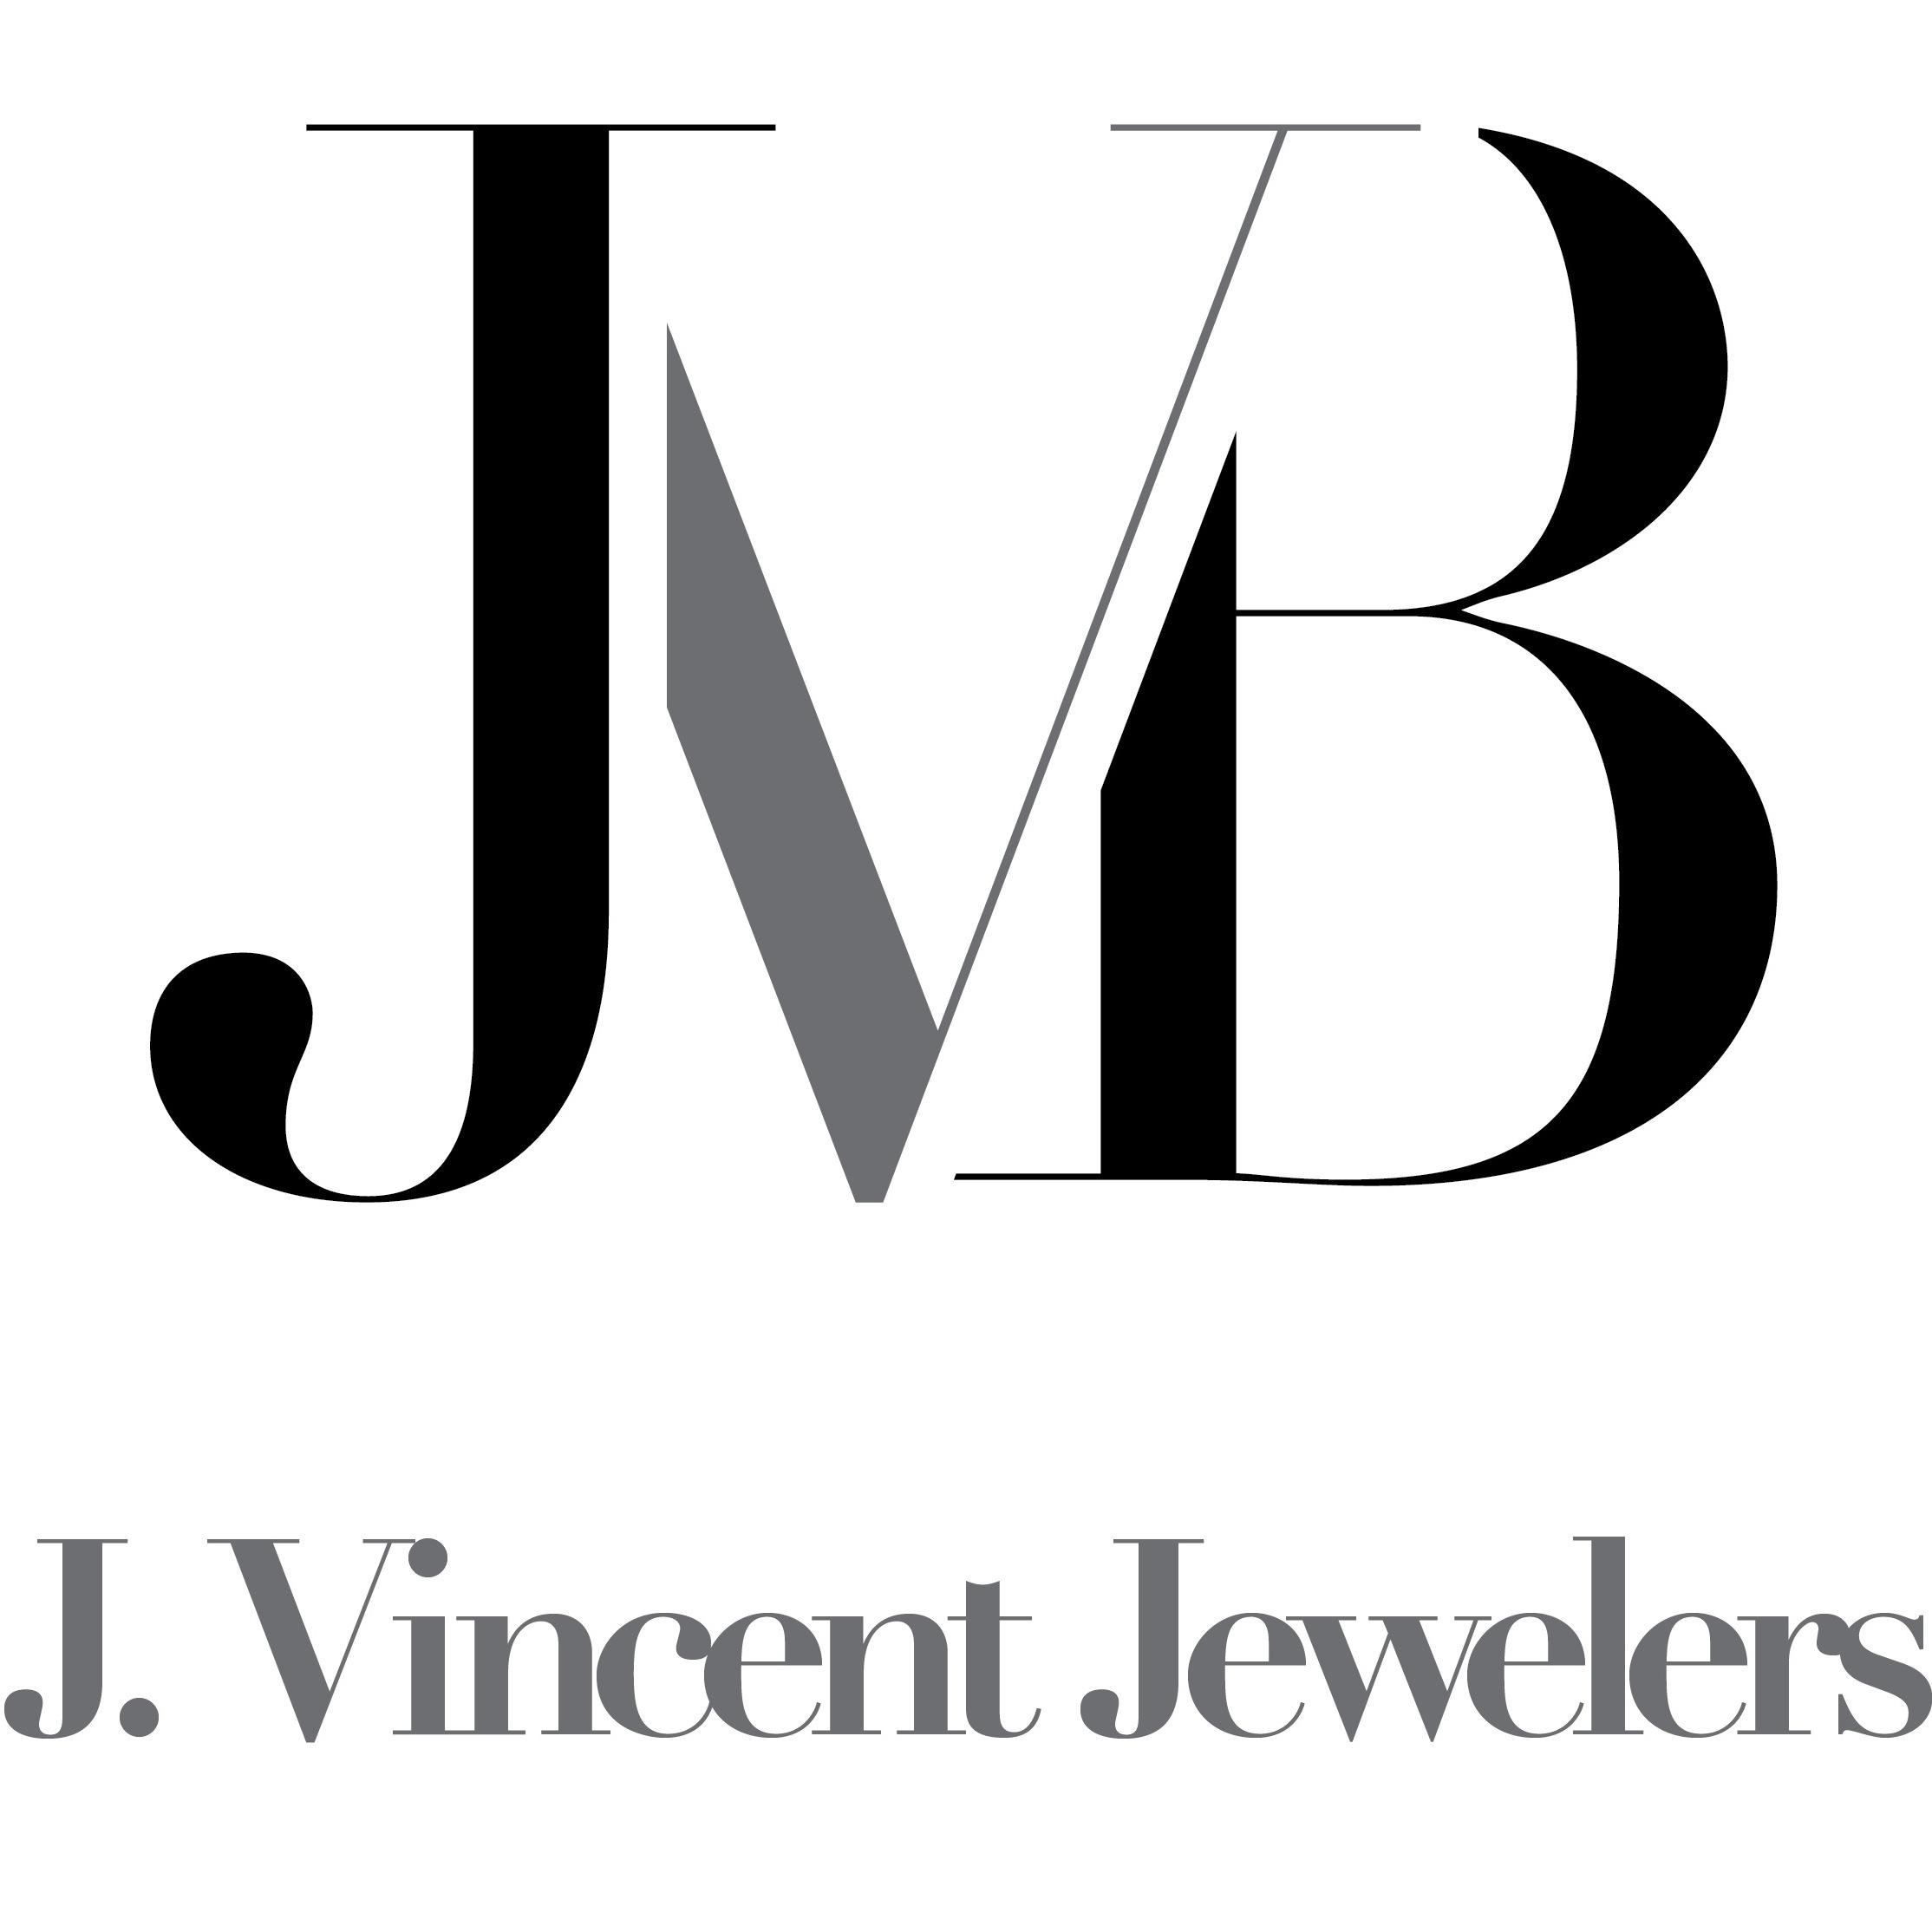 near excellent jewelers overpriced options jewellery vs if james me better d kay by allen nyc